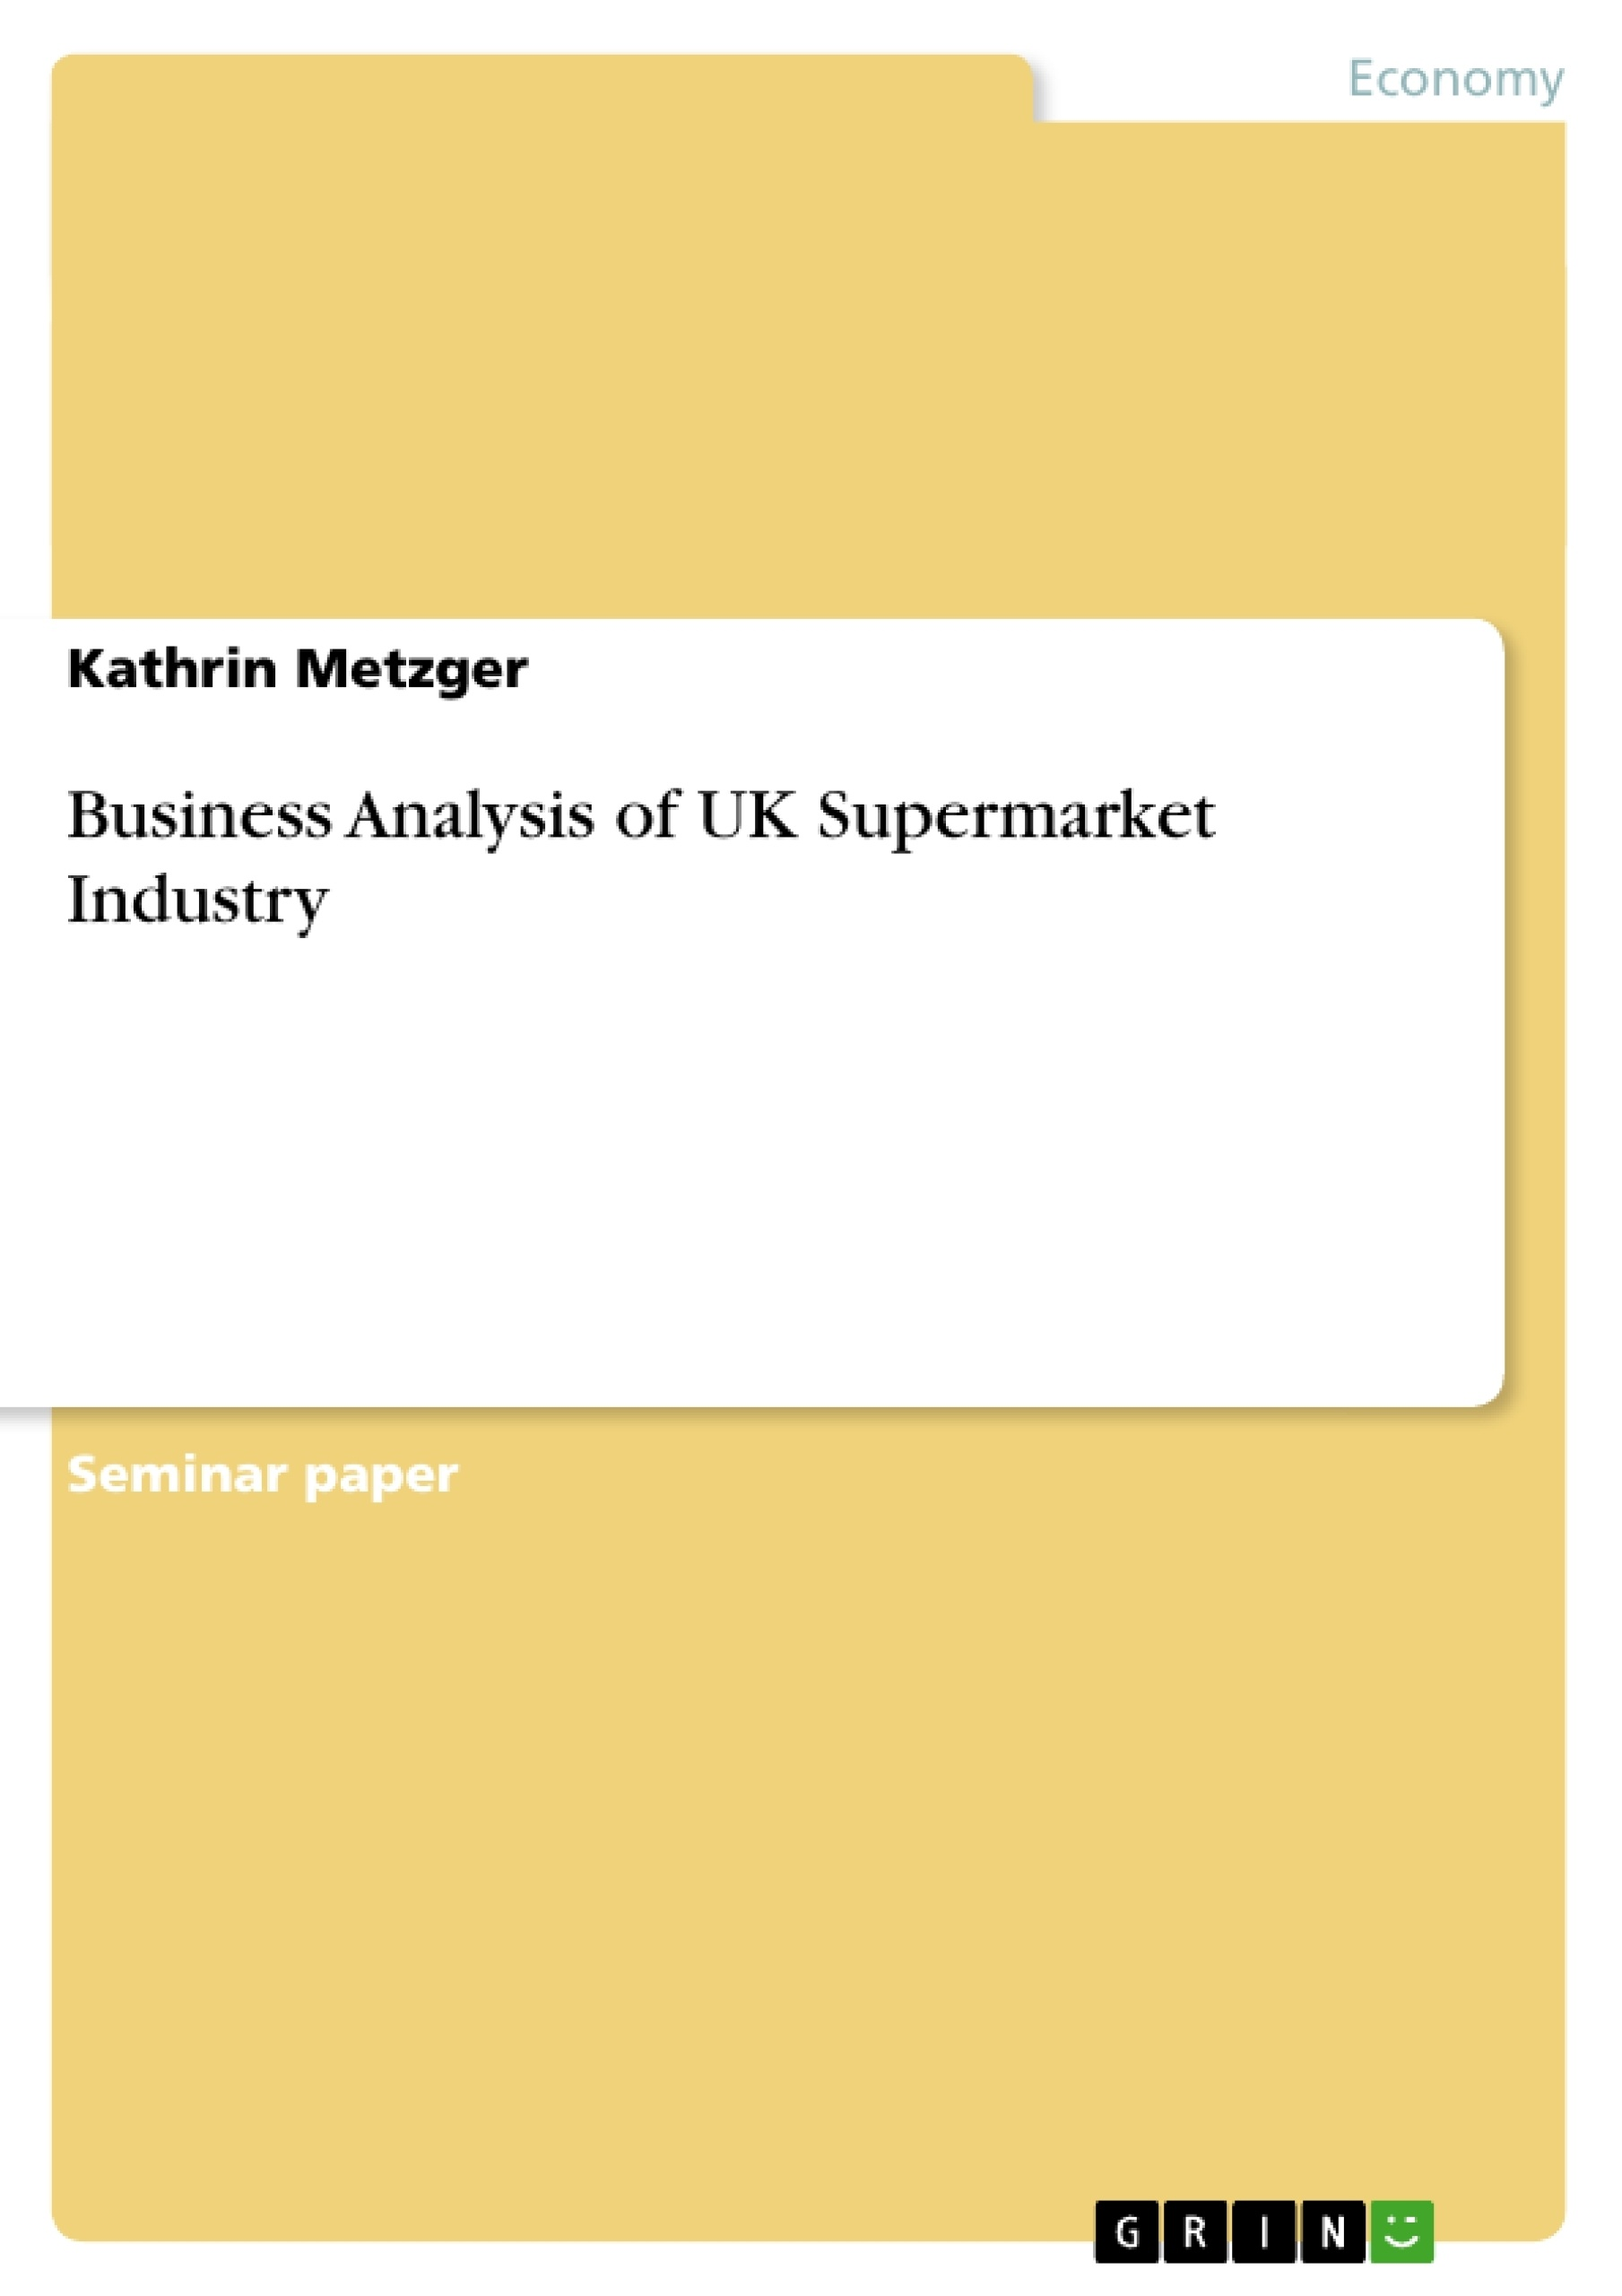 Title: Business Analysis of UK Supermarket Industry